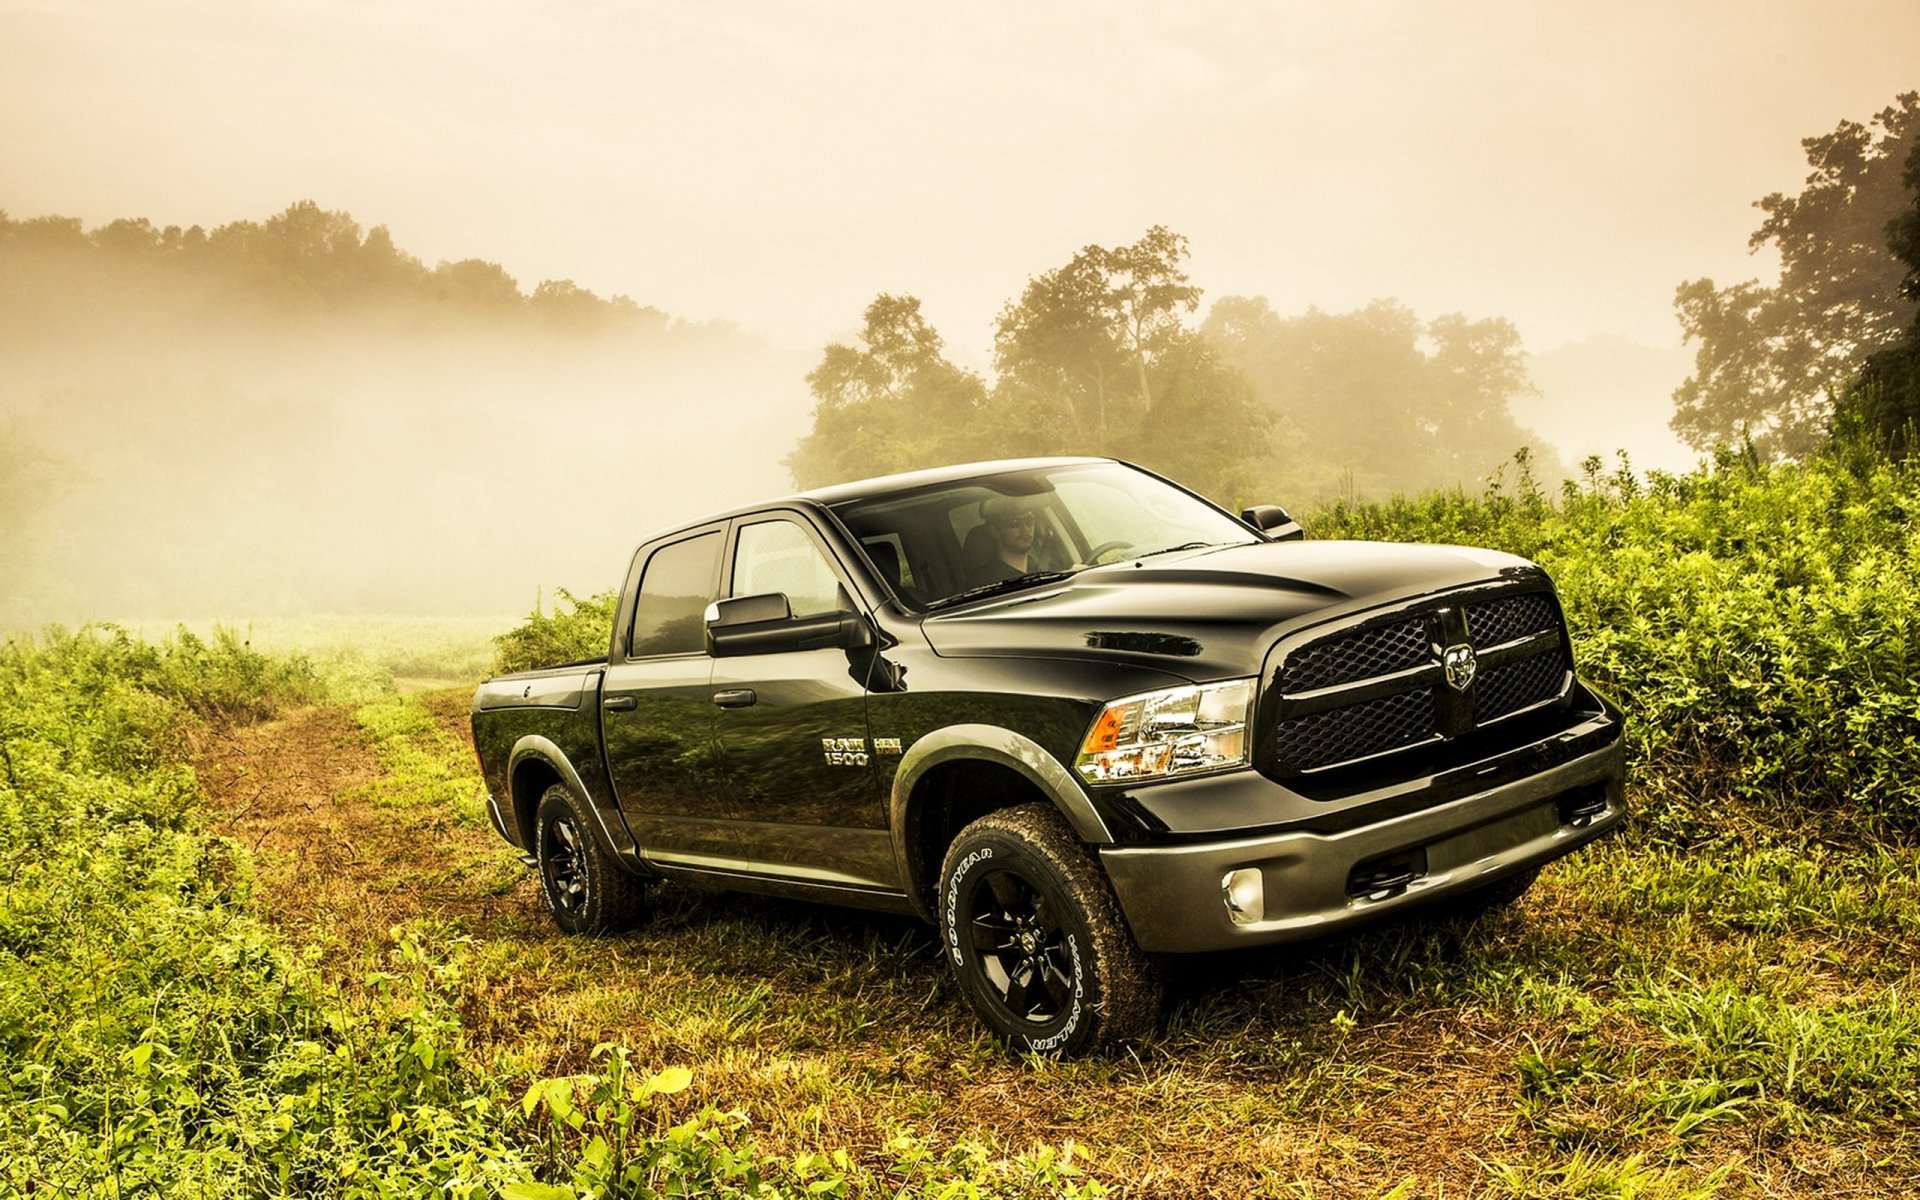 27 Dodge Ram 1500 Hd Wallpapers Background Images Wallpaper Abyss